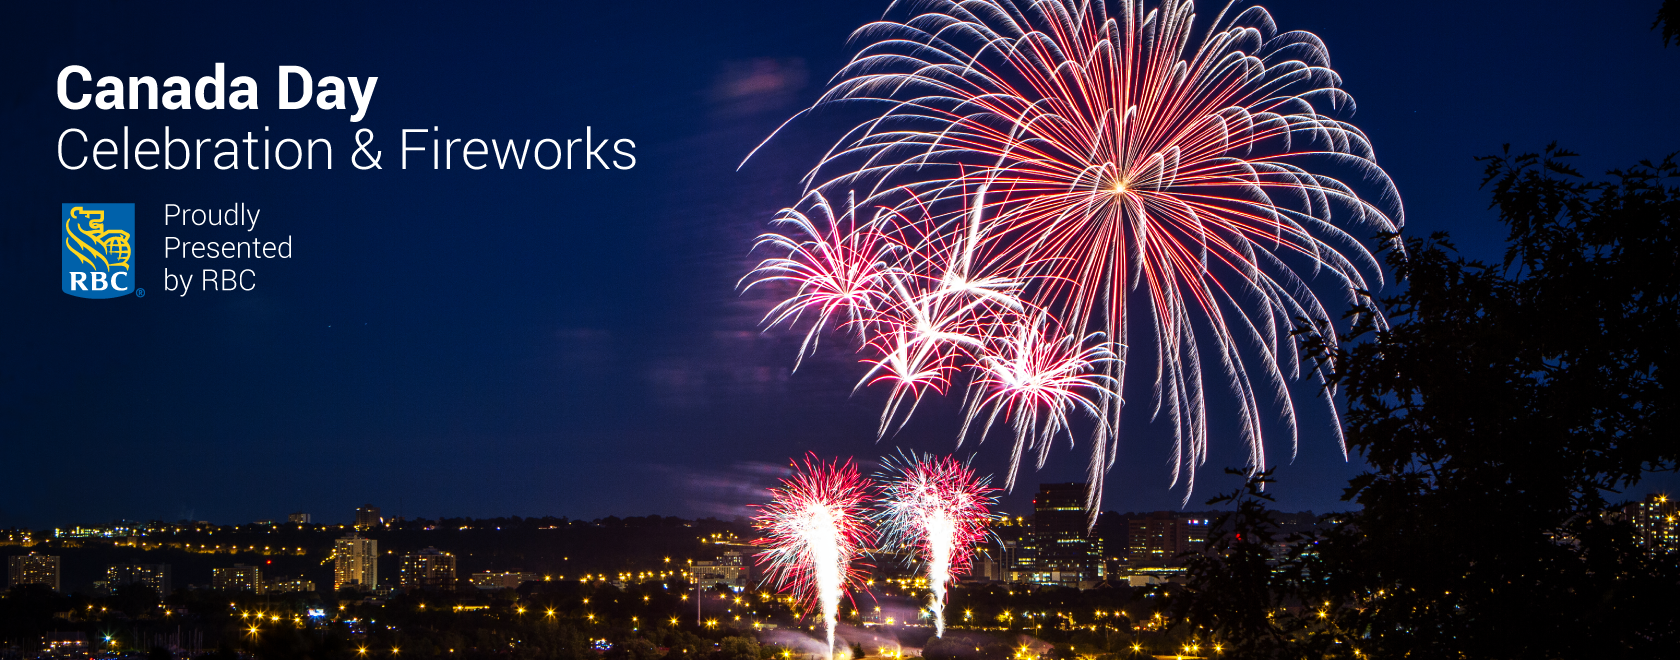 "Fireworks above the city with the text ""Canada Day Celebration & Fireworks Proudly presented by RBC"""